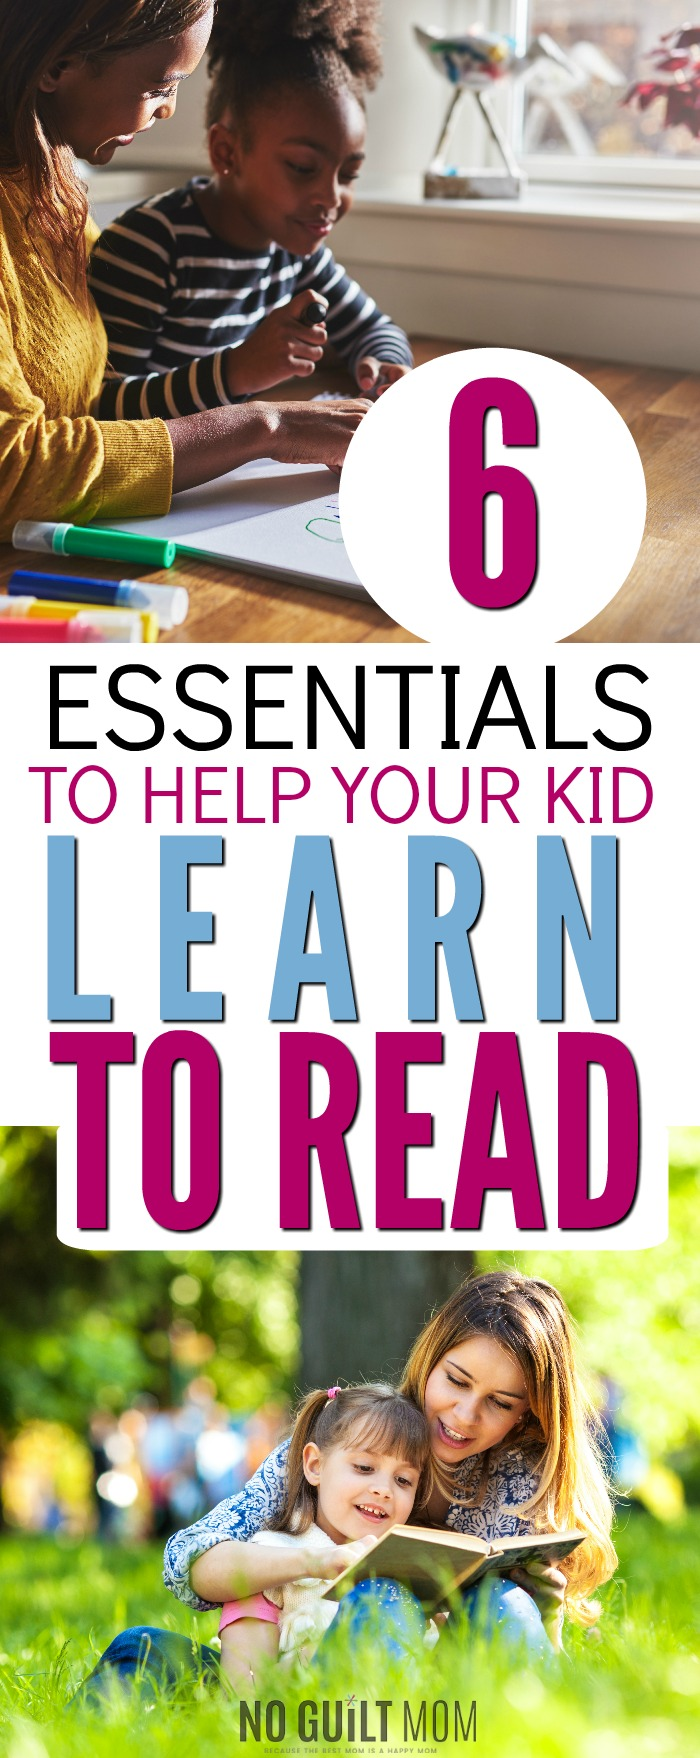 How do I help my child learn to read? These 6 simple ideas and activities require no prep and can be done practically anywhere. Great advice for parents of preschoolers and kindergarteners. If you've wondered how to get your kid to read, this is a must-try.